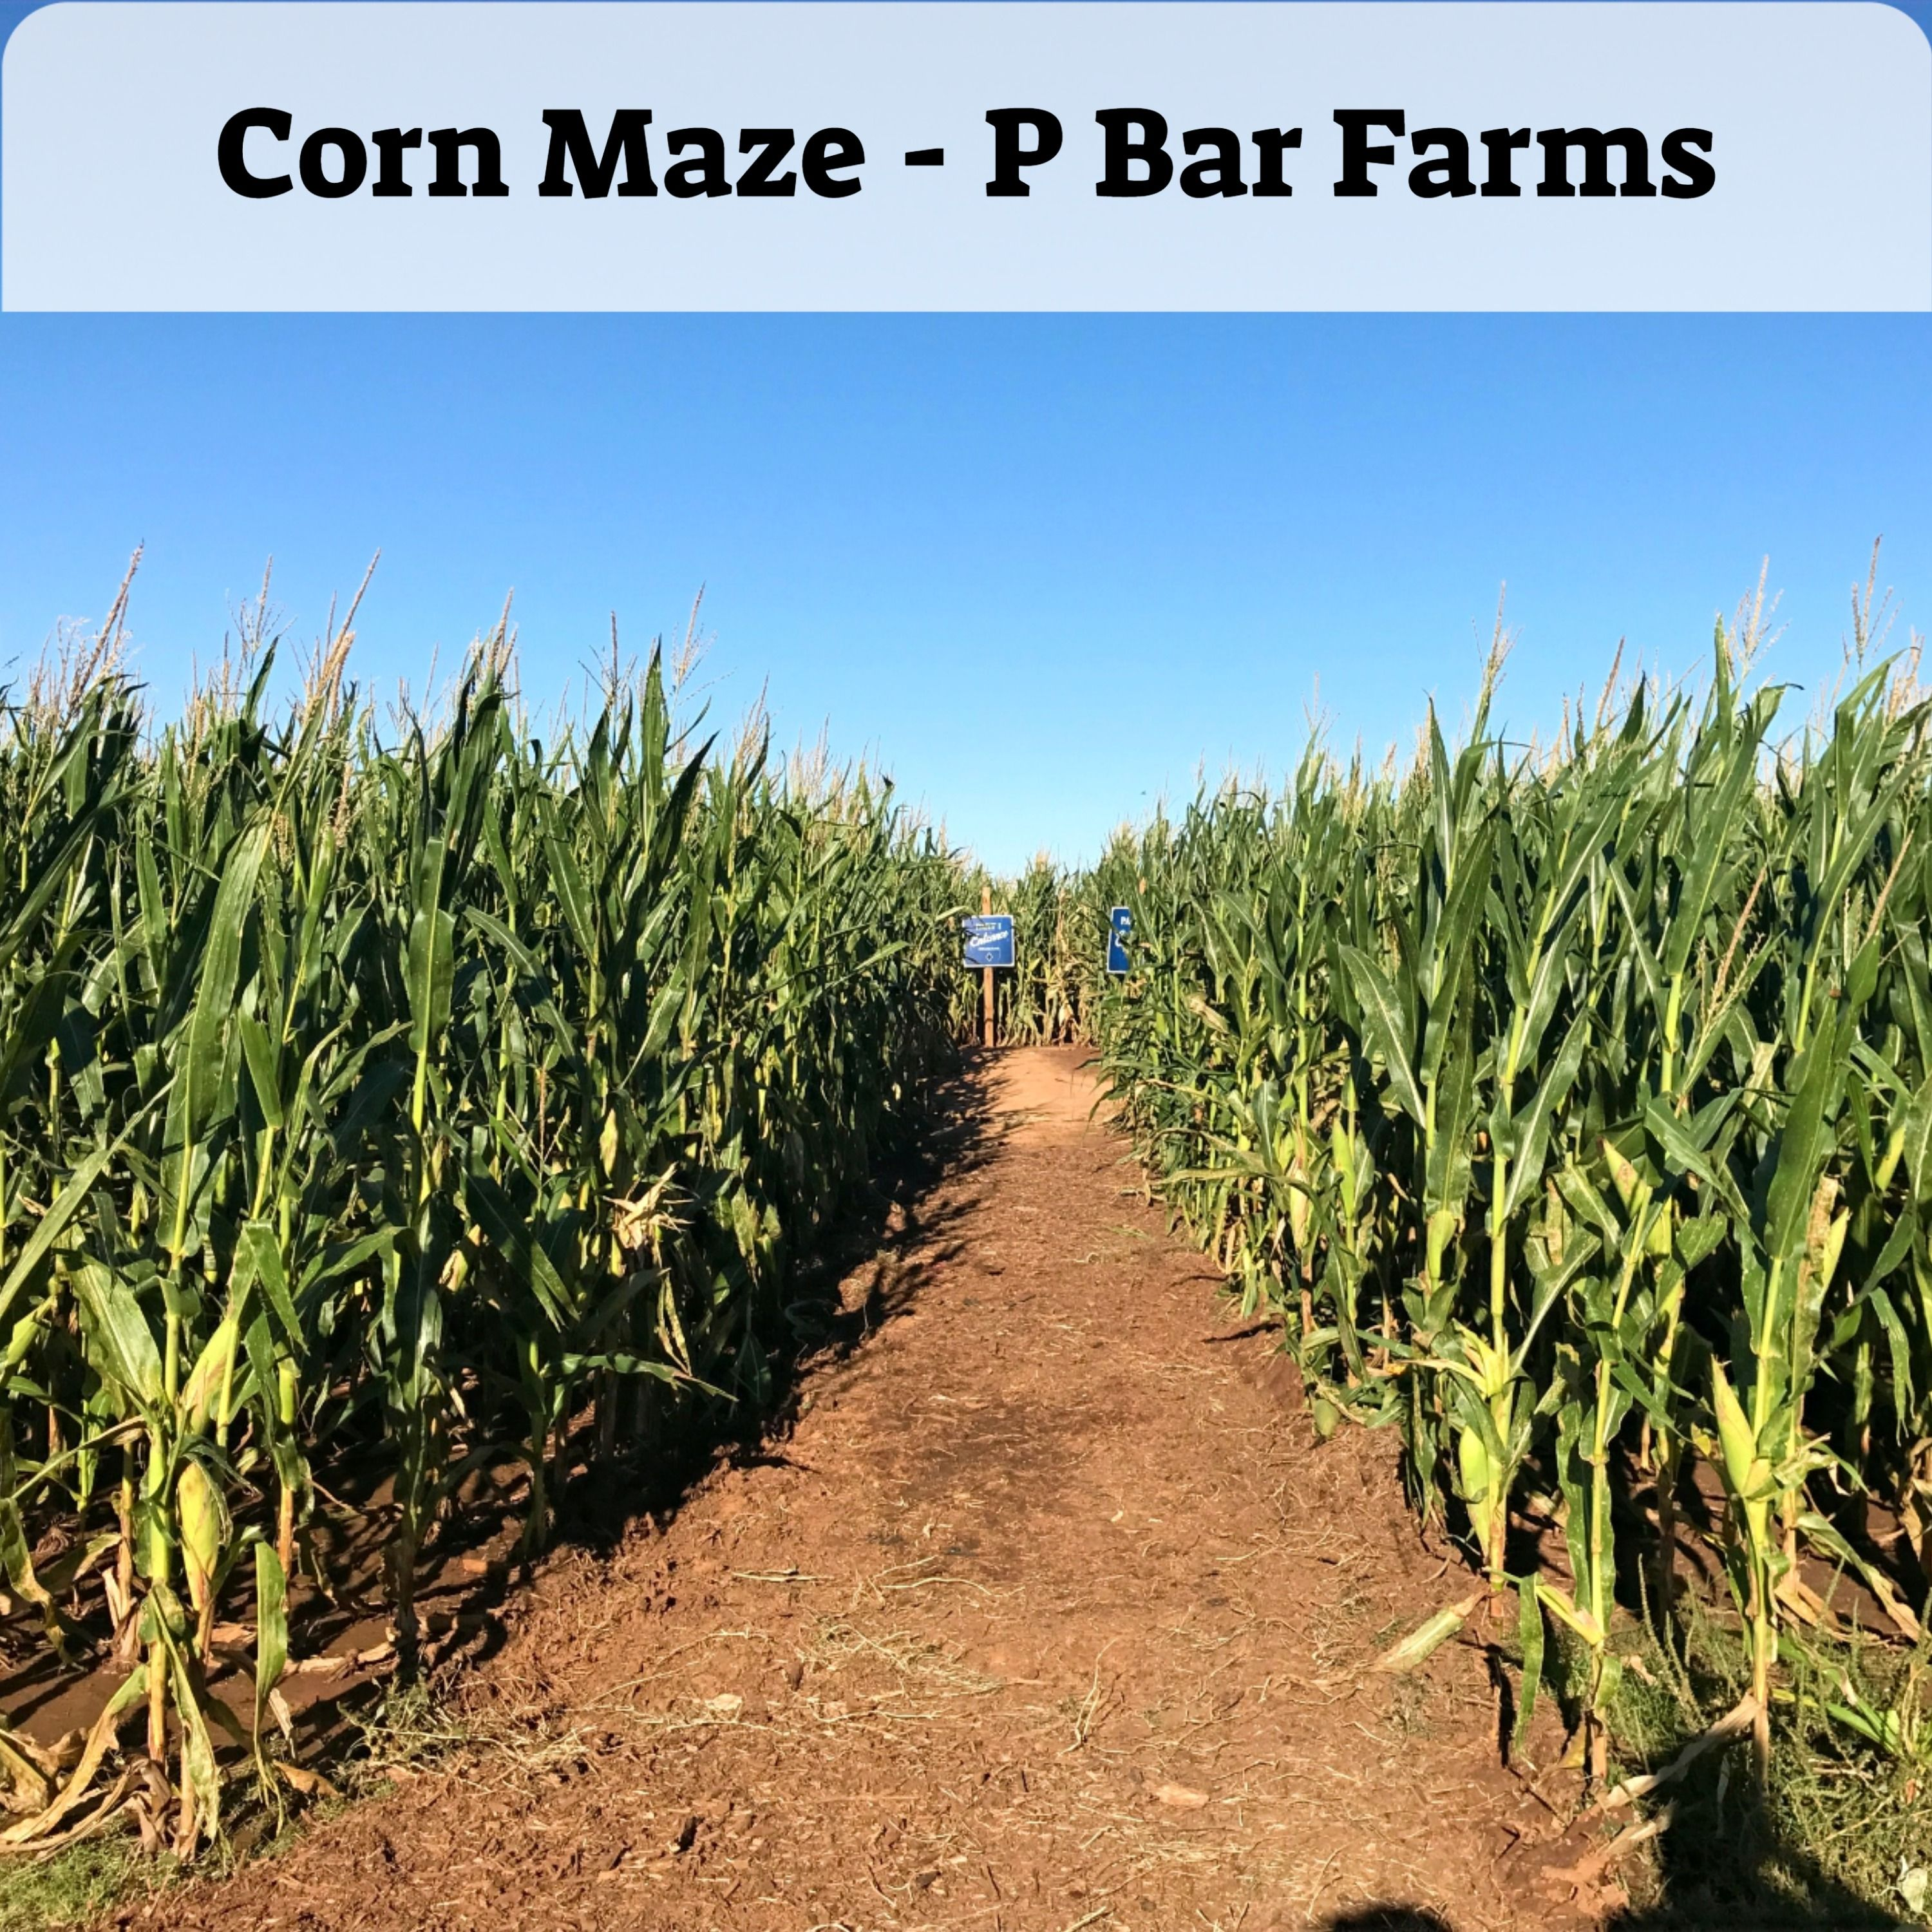 How Much Is It To Get In The Corn Maze